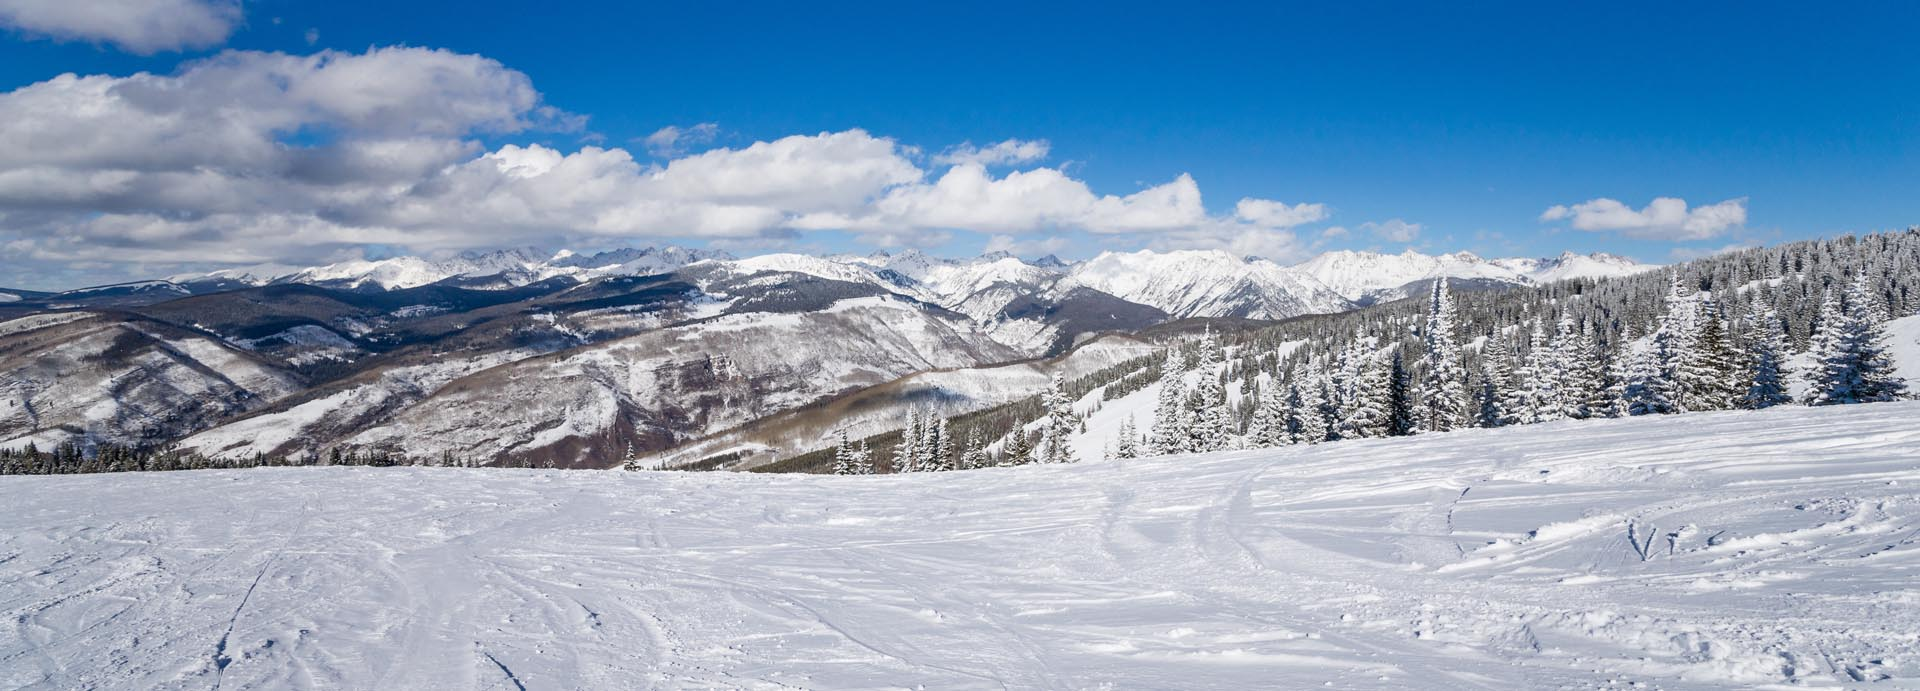 white snow mountains at VRI's Aspen at Streamside in Colorado.